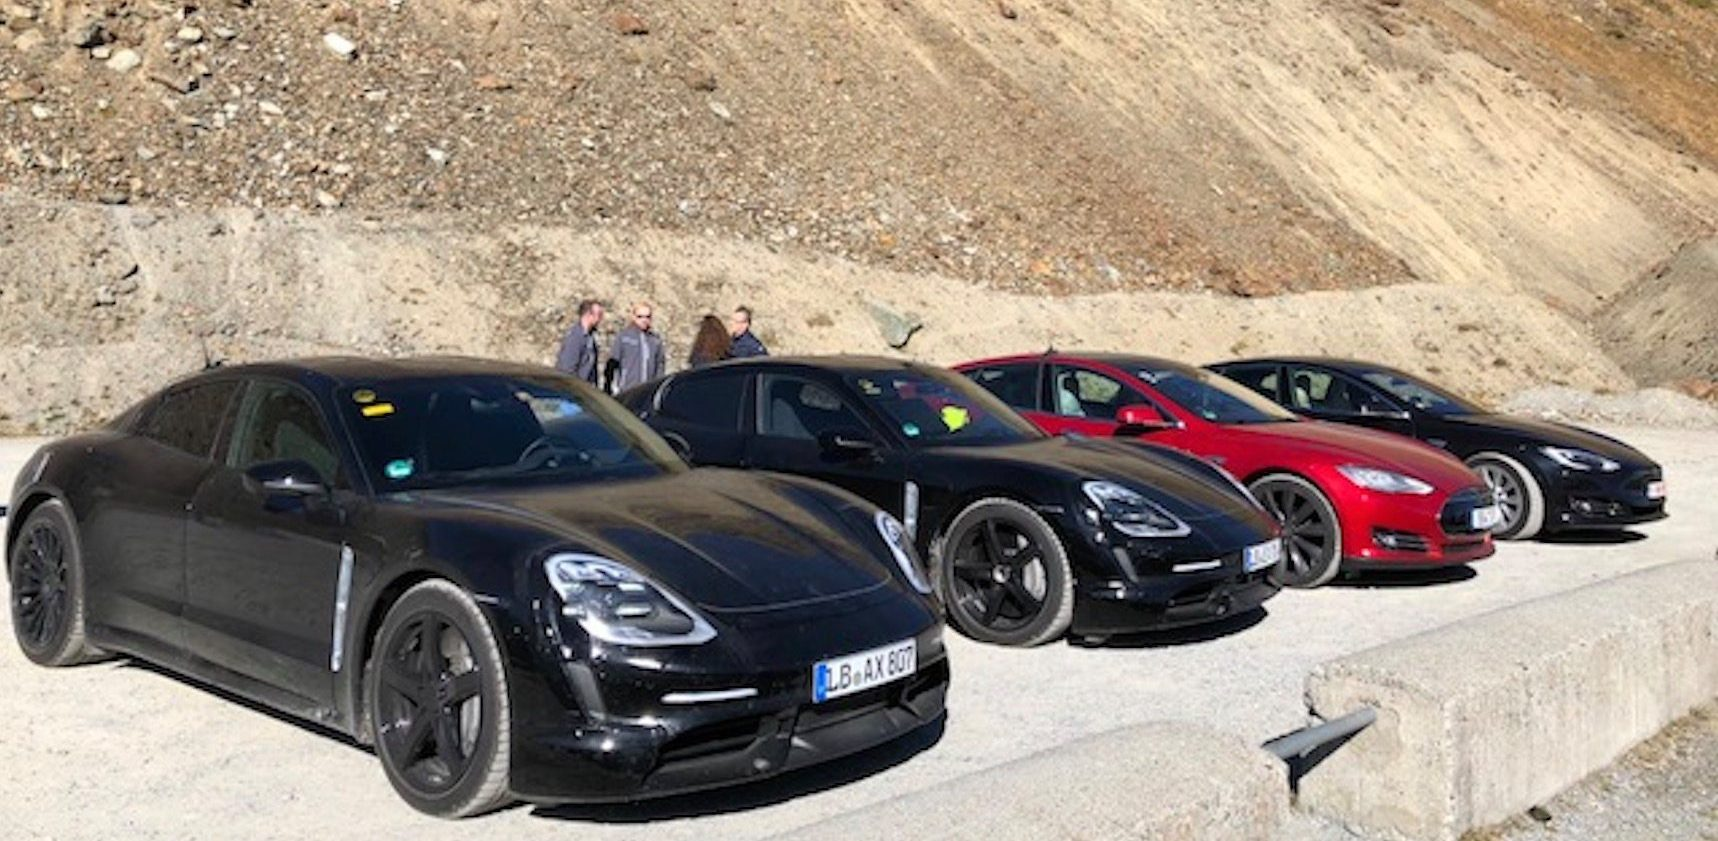 What Tesla did is 'truly astonishing', says Porsche